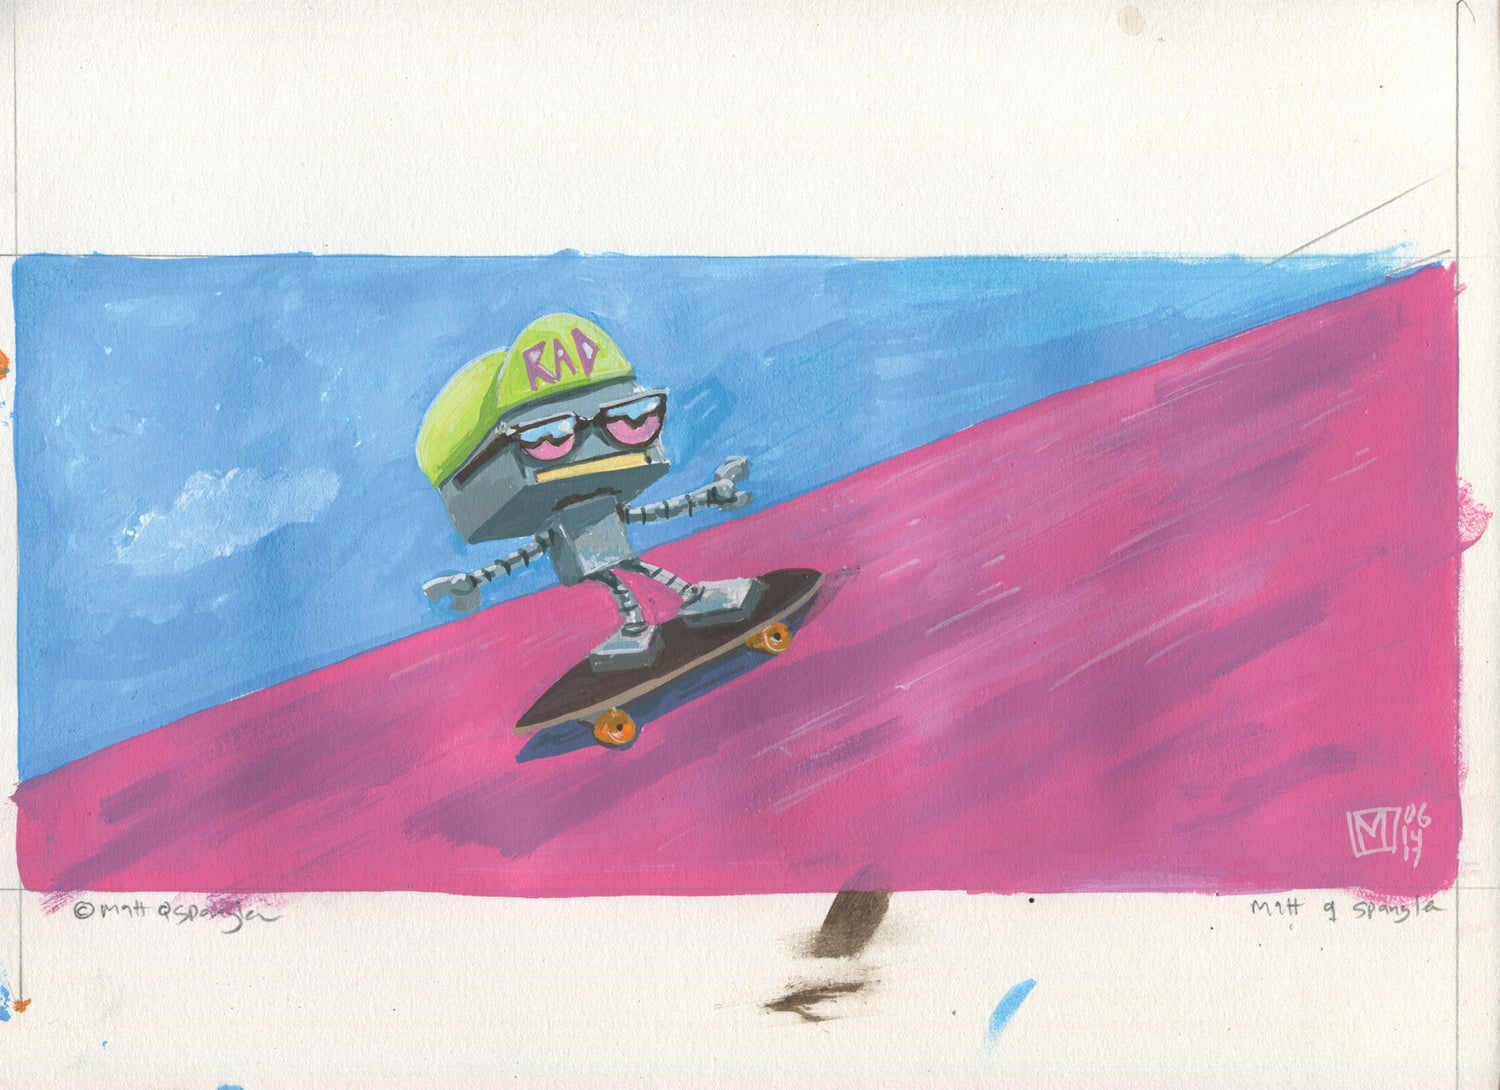 Image of Skate Rad